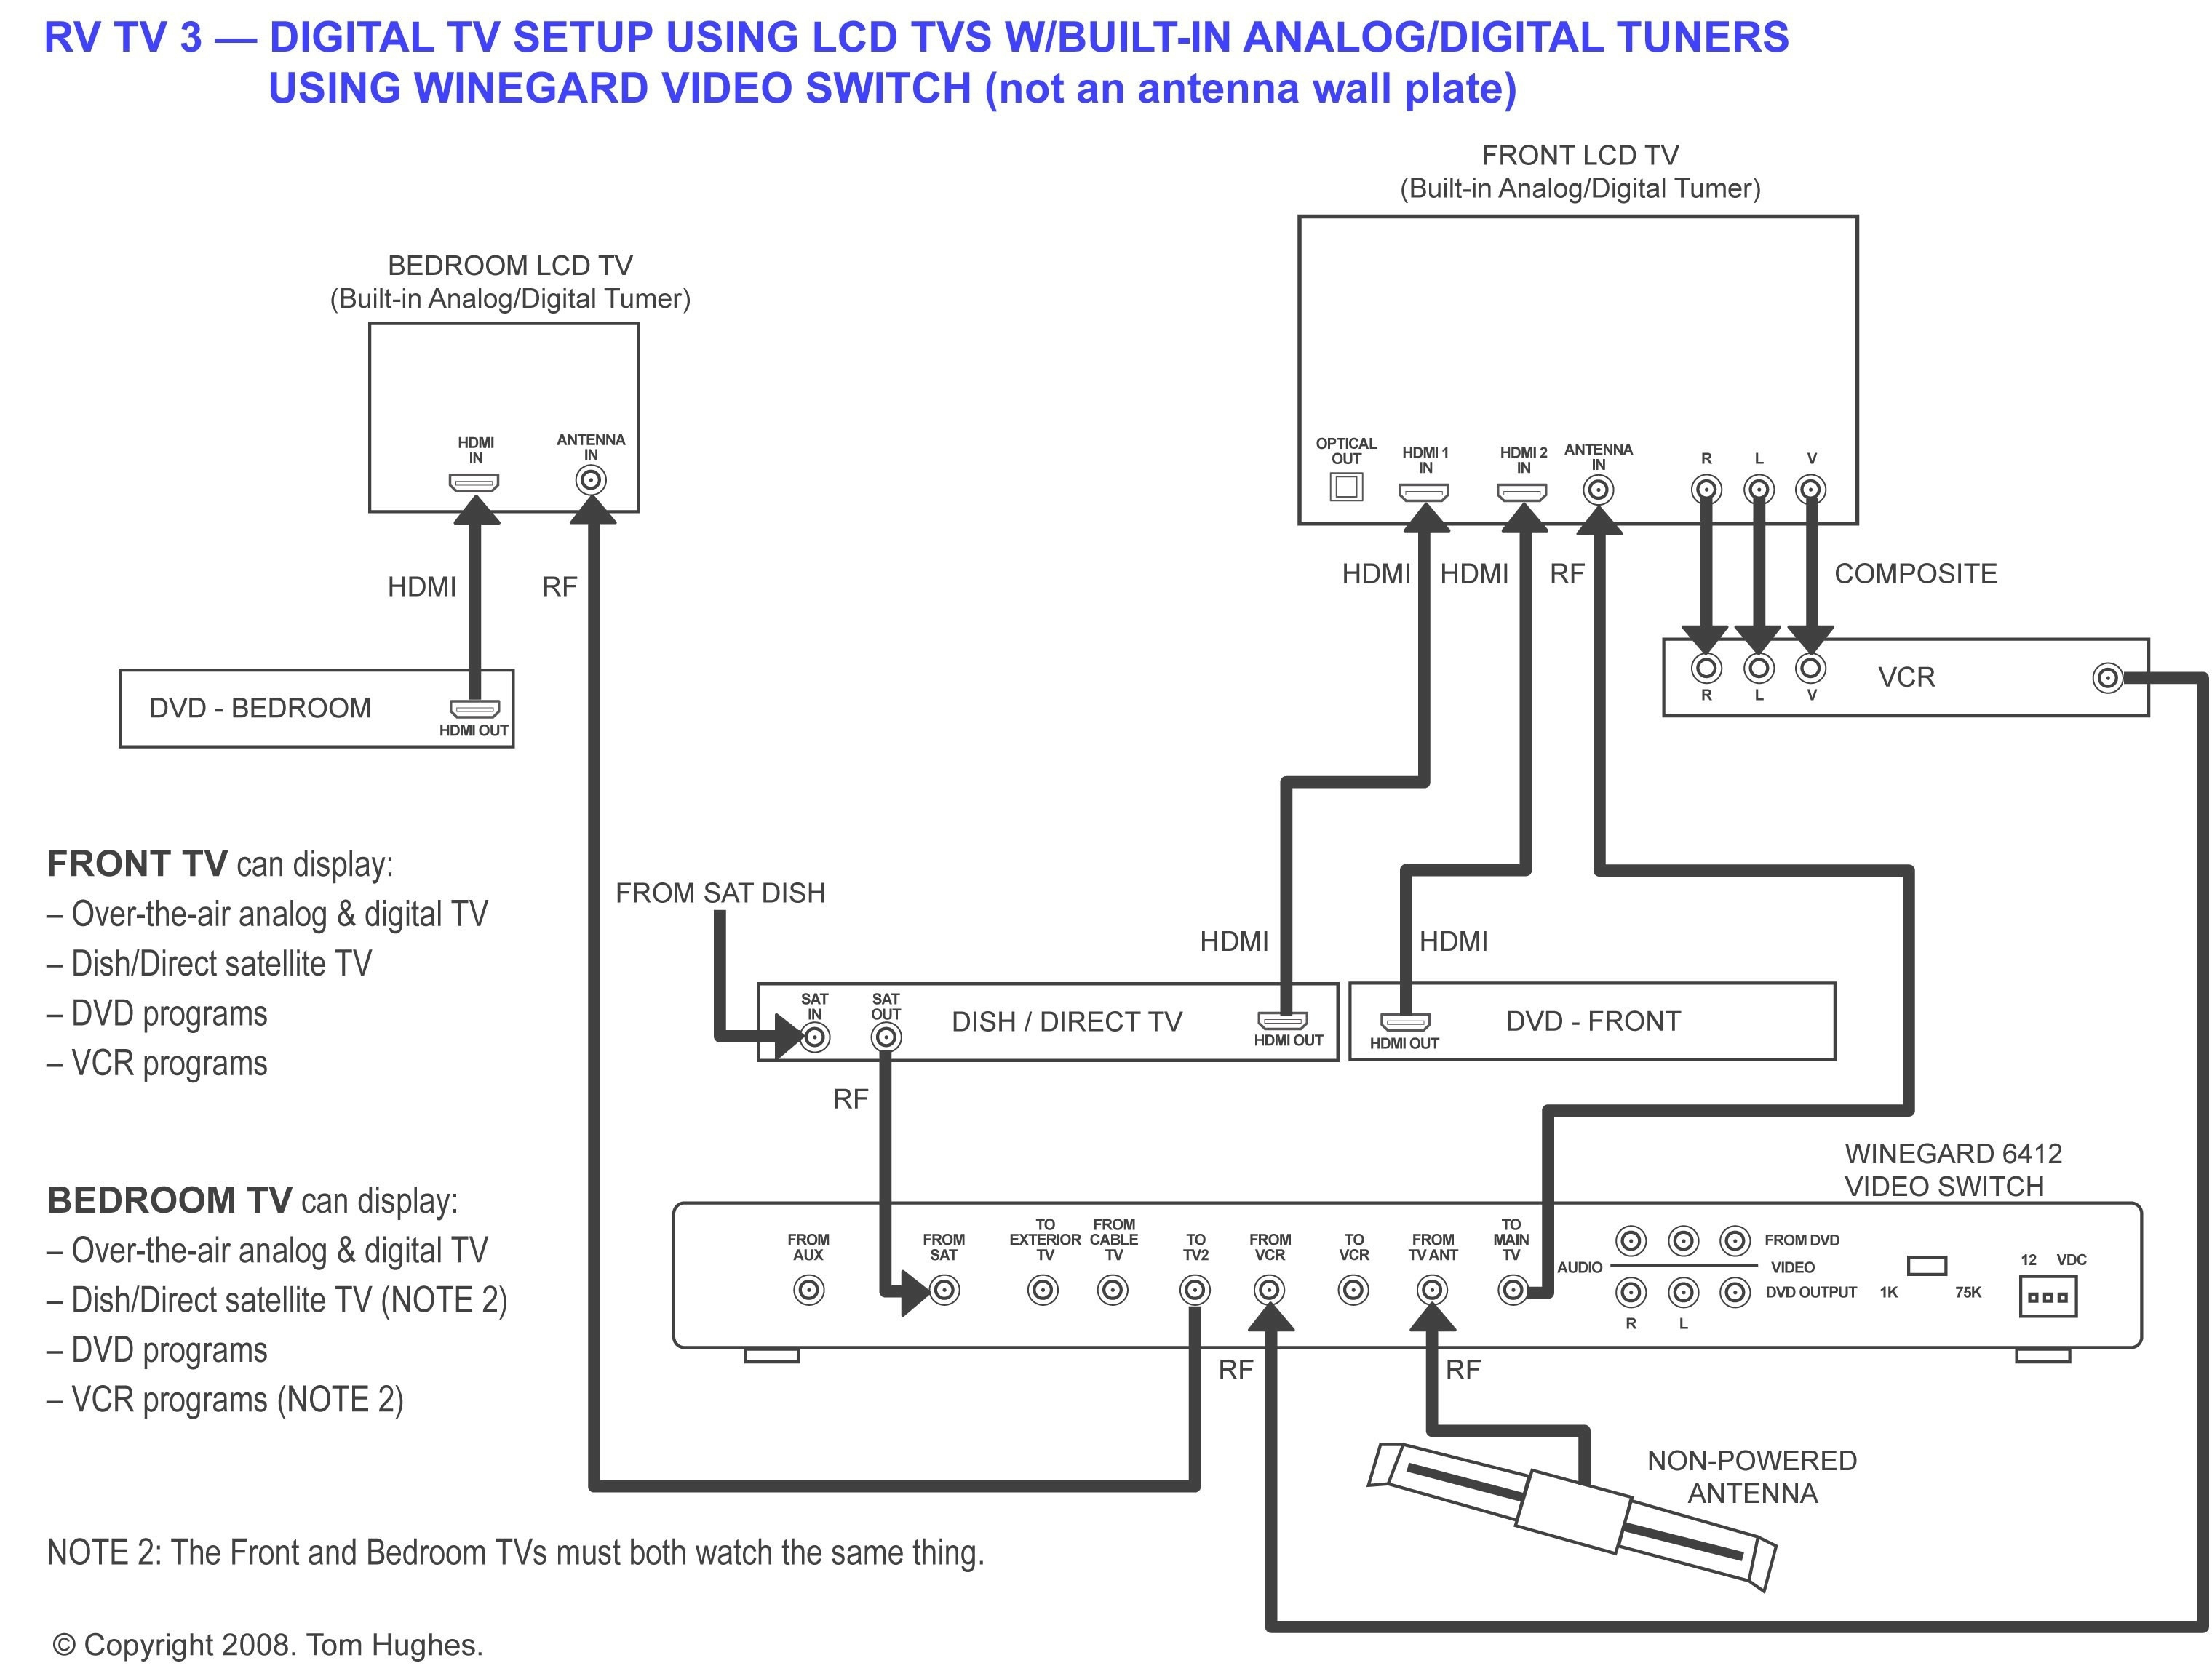 Tv Wiring Diagrams | Wiring Diagram on wiring diagram, termination icon, termination flowchart, termination process, termination sequence, electricity distribution, termination switch wiring,